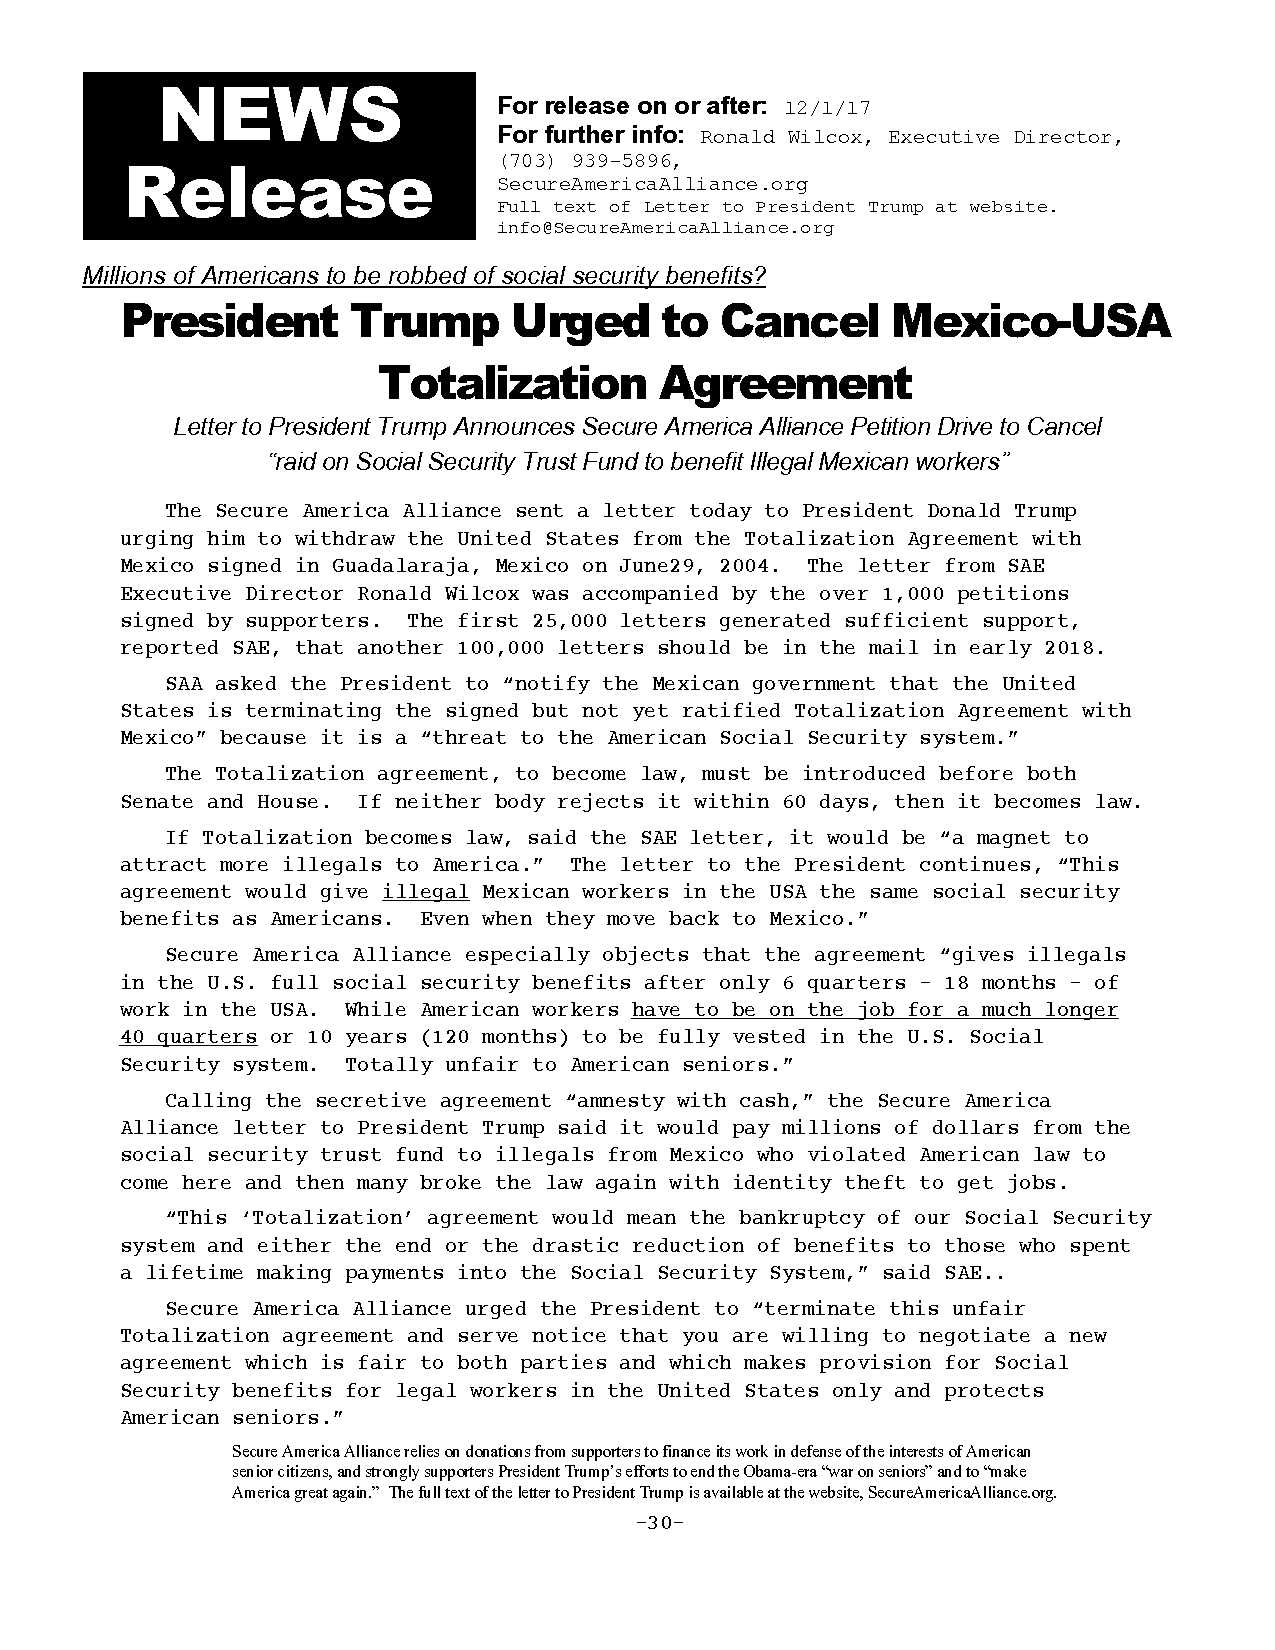 President Trump Urged To Cancel Mexico Usa Totalization Agreement